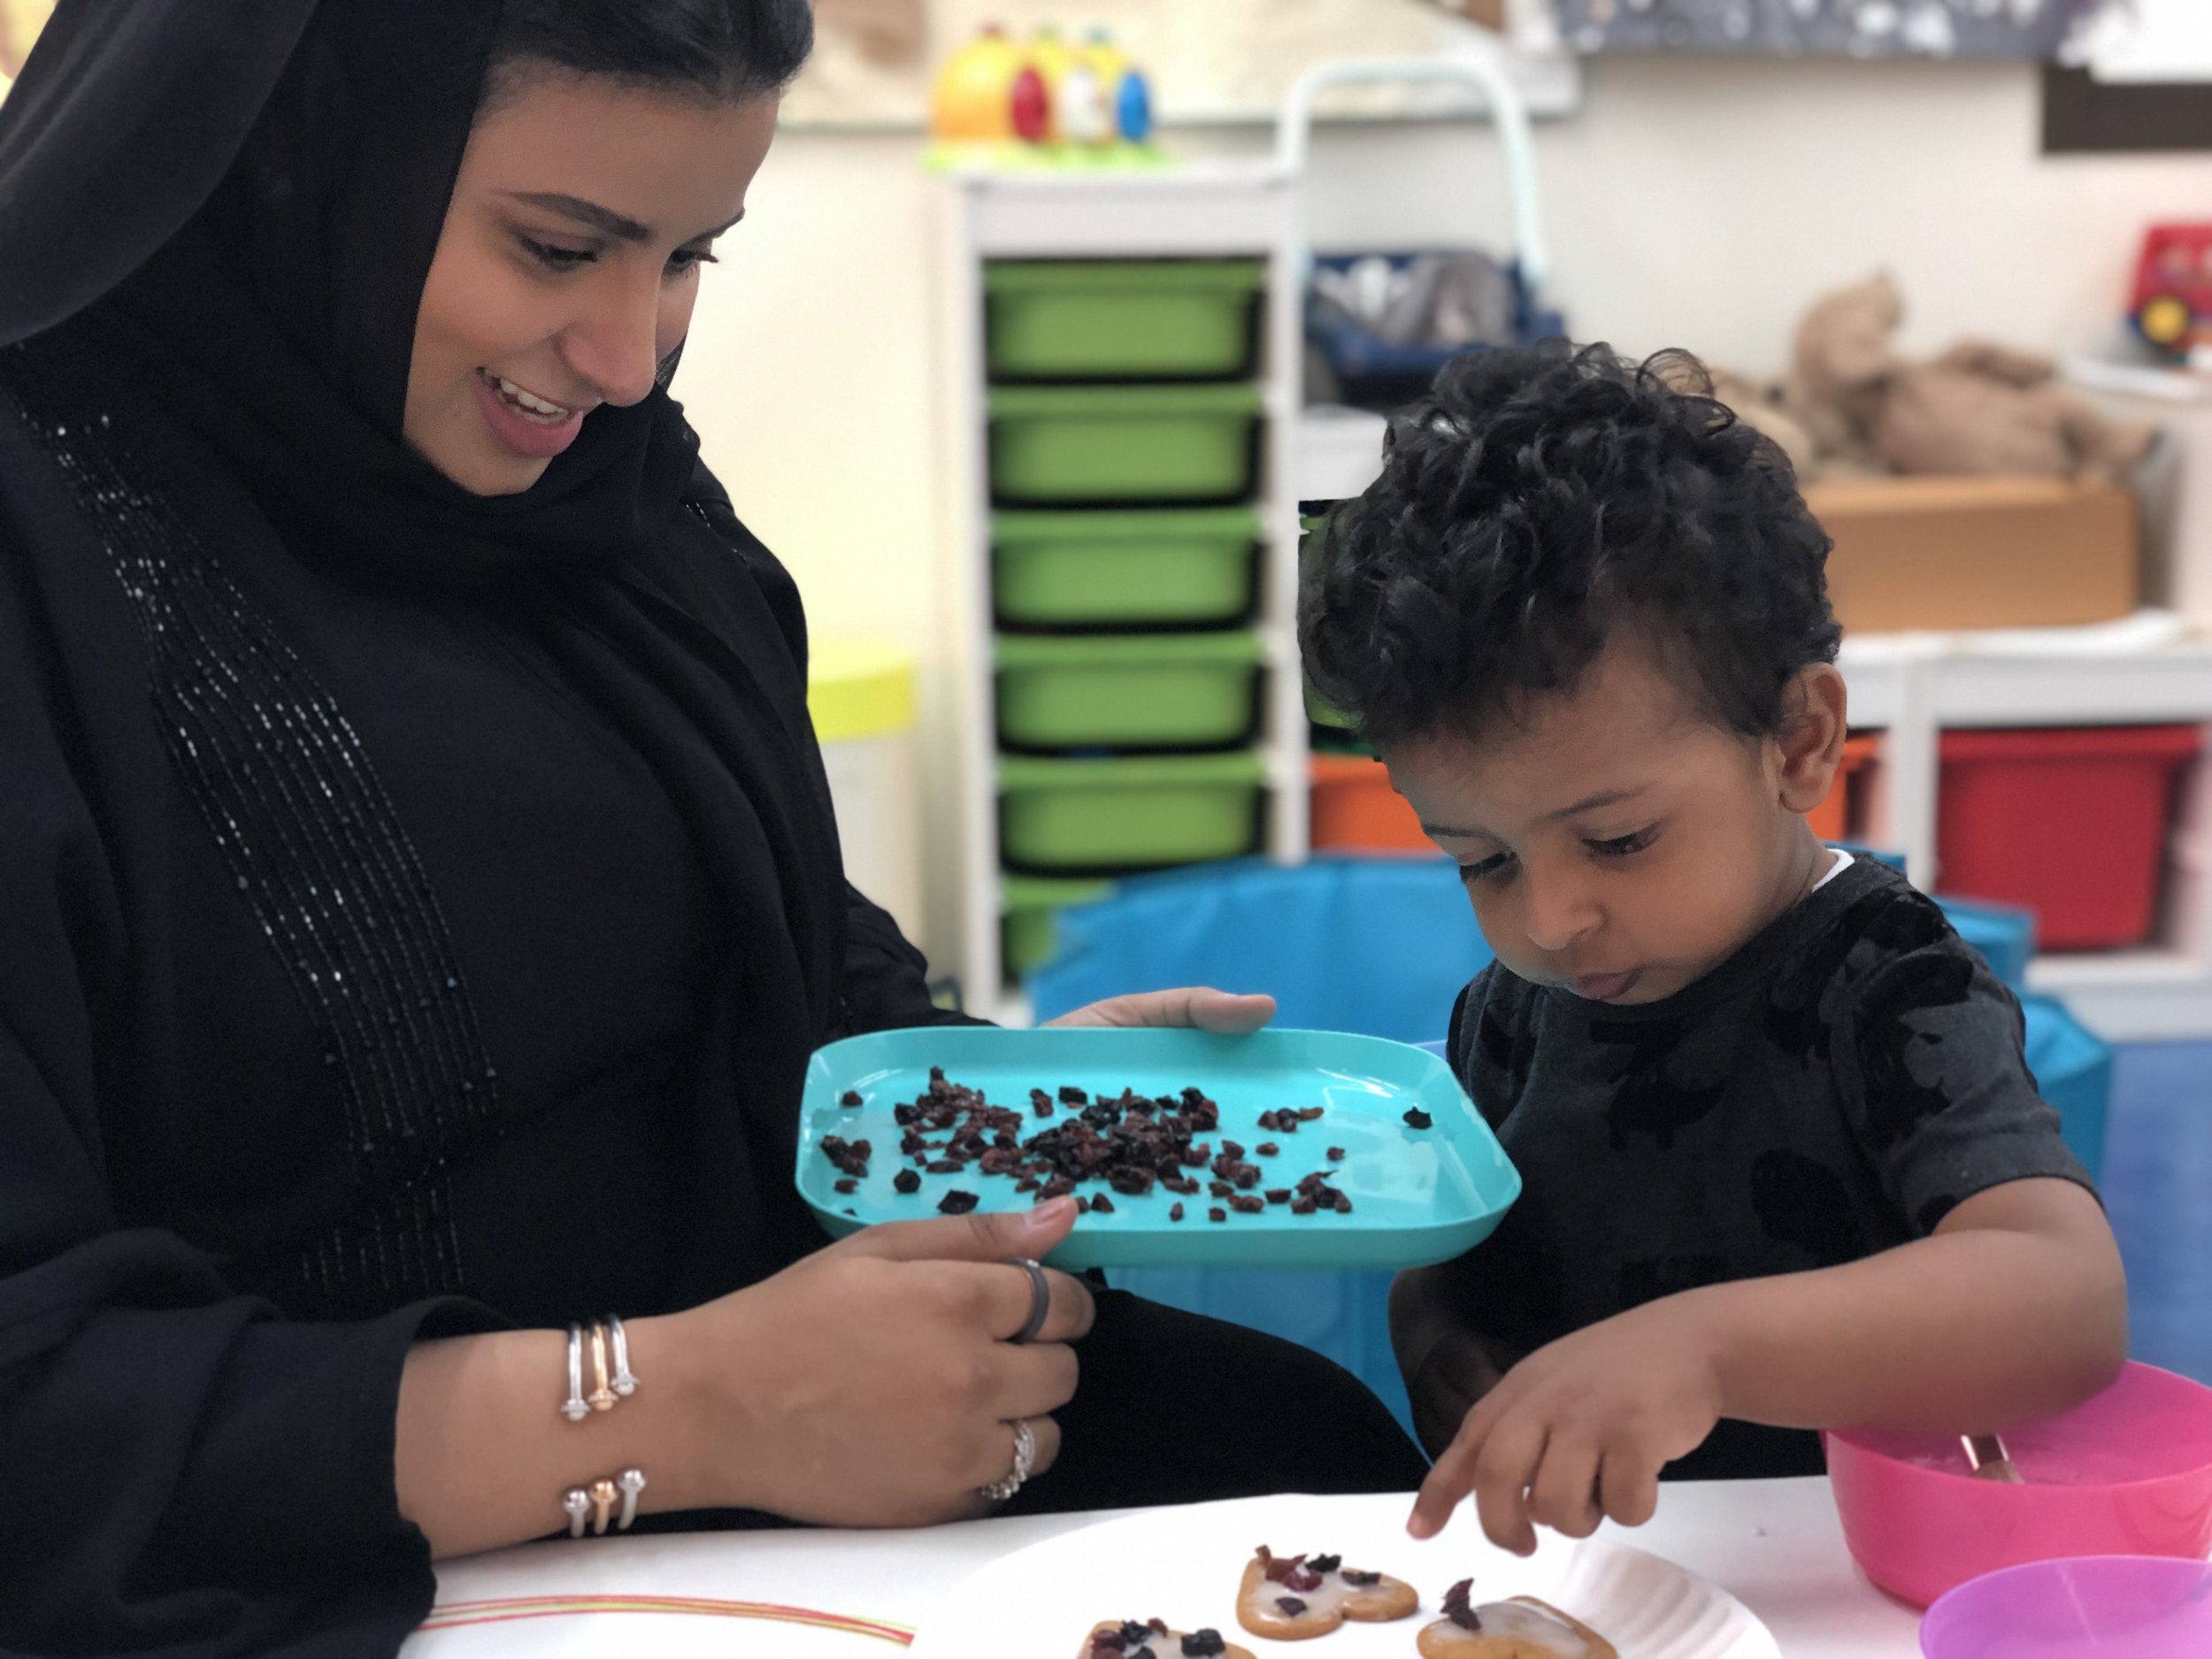 f9c6558a8d4 Kid's Island Nursery, kindergarten in Dubai, believes that modelling the  desired behavior is the best place to start. Teachers speak to the children  in a ...